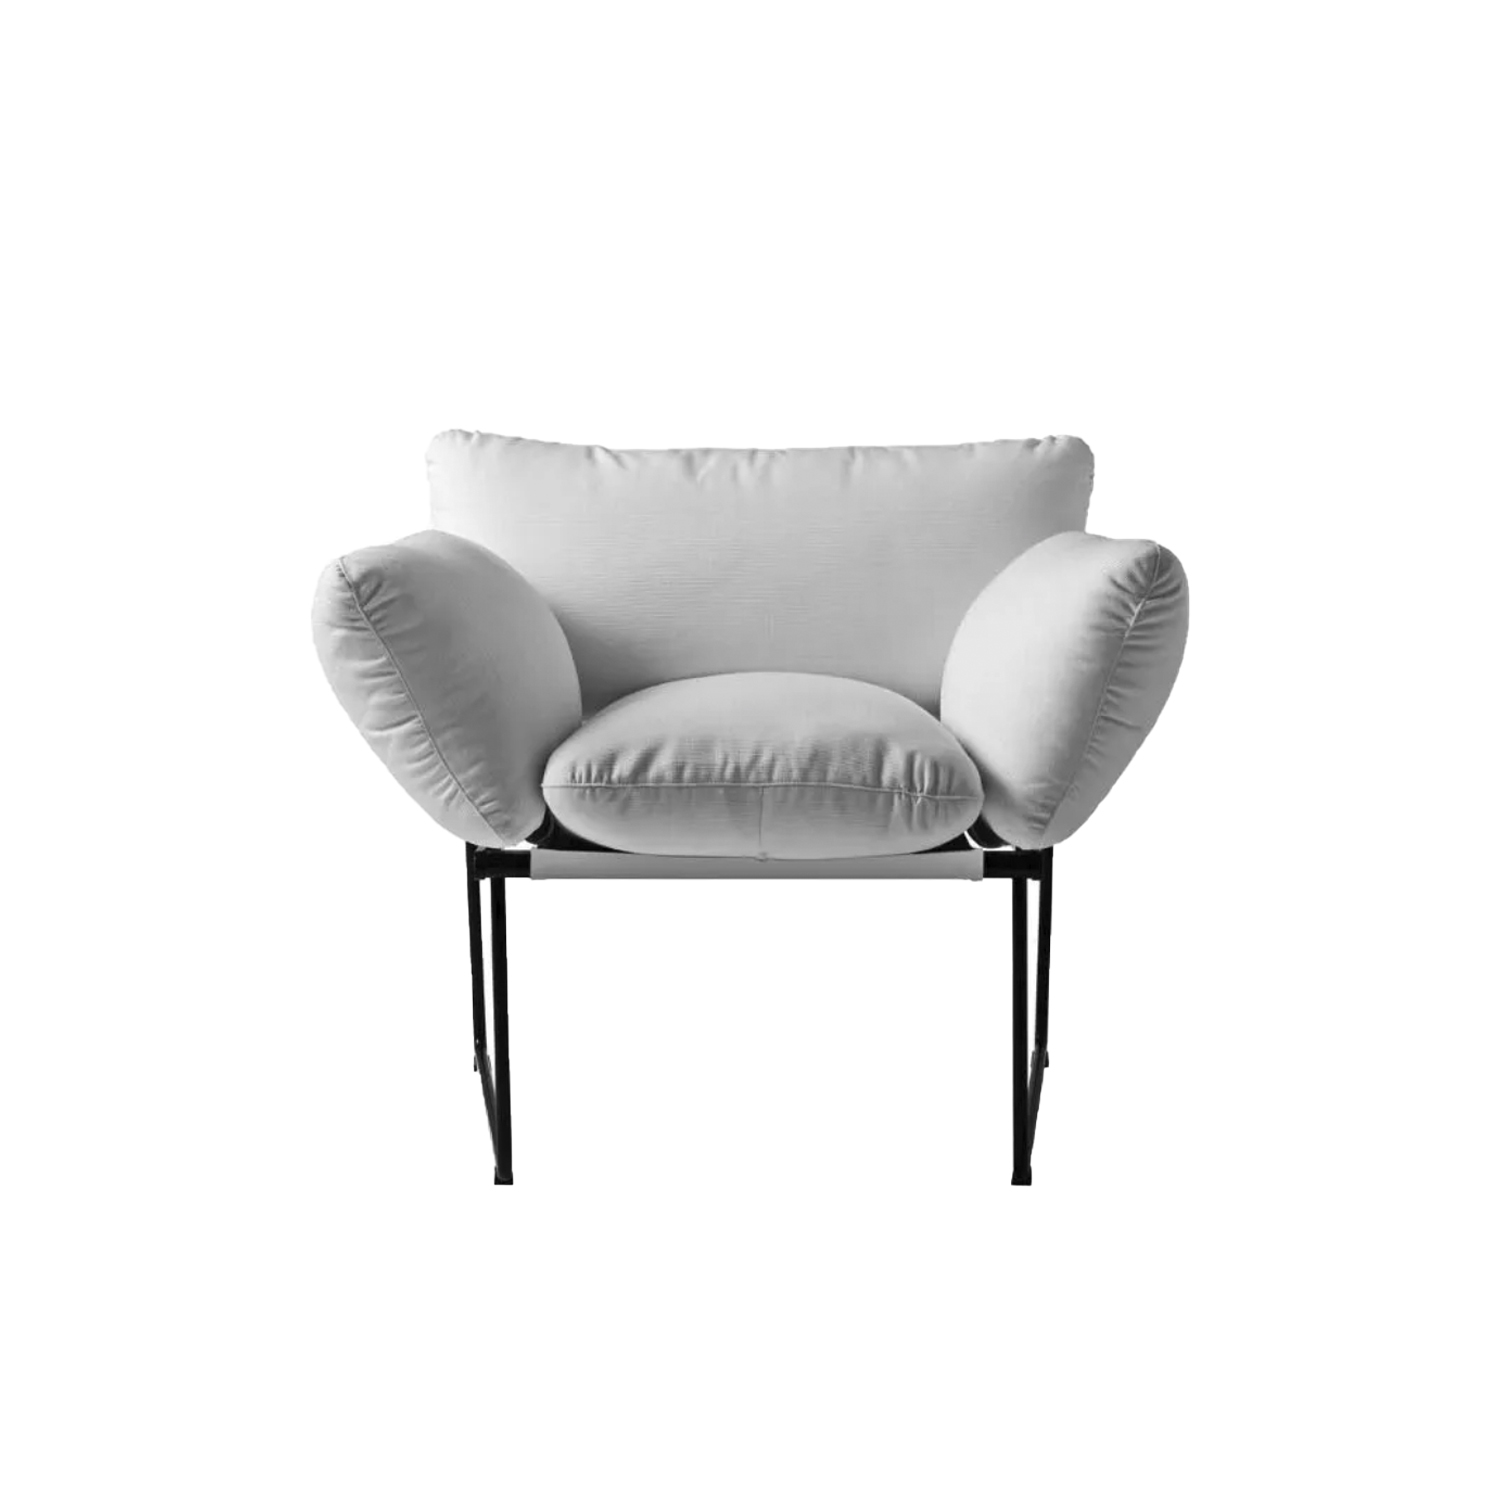 Elisa Armchair - Synthesis of lightness and comfort, with a minimal and elegant design. From a project designed by Enzo Mari for Driade, Elisa is a collection of sofas and armchairs with a thin structure, in contrast with the soft volume of the cushions. Extremely comfortable thanks to the large and generous shapes of the polyurethane foam cushions, the Elisa sofa and armchair are characterized by the essential design of the base, a slender steel structure with sled supports that makes the whole elegant and light. Beautiful furnishing accessories which, thanks to the simplicity of their line, are refined and sophisticated. The sofa is proposed in the two dimensional variant with two and three seats and with covering to choose from in a wide range of colors. Available in indoor and outdoor versions.  Indoor Use Only | Matter of Stuff